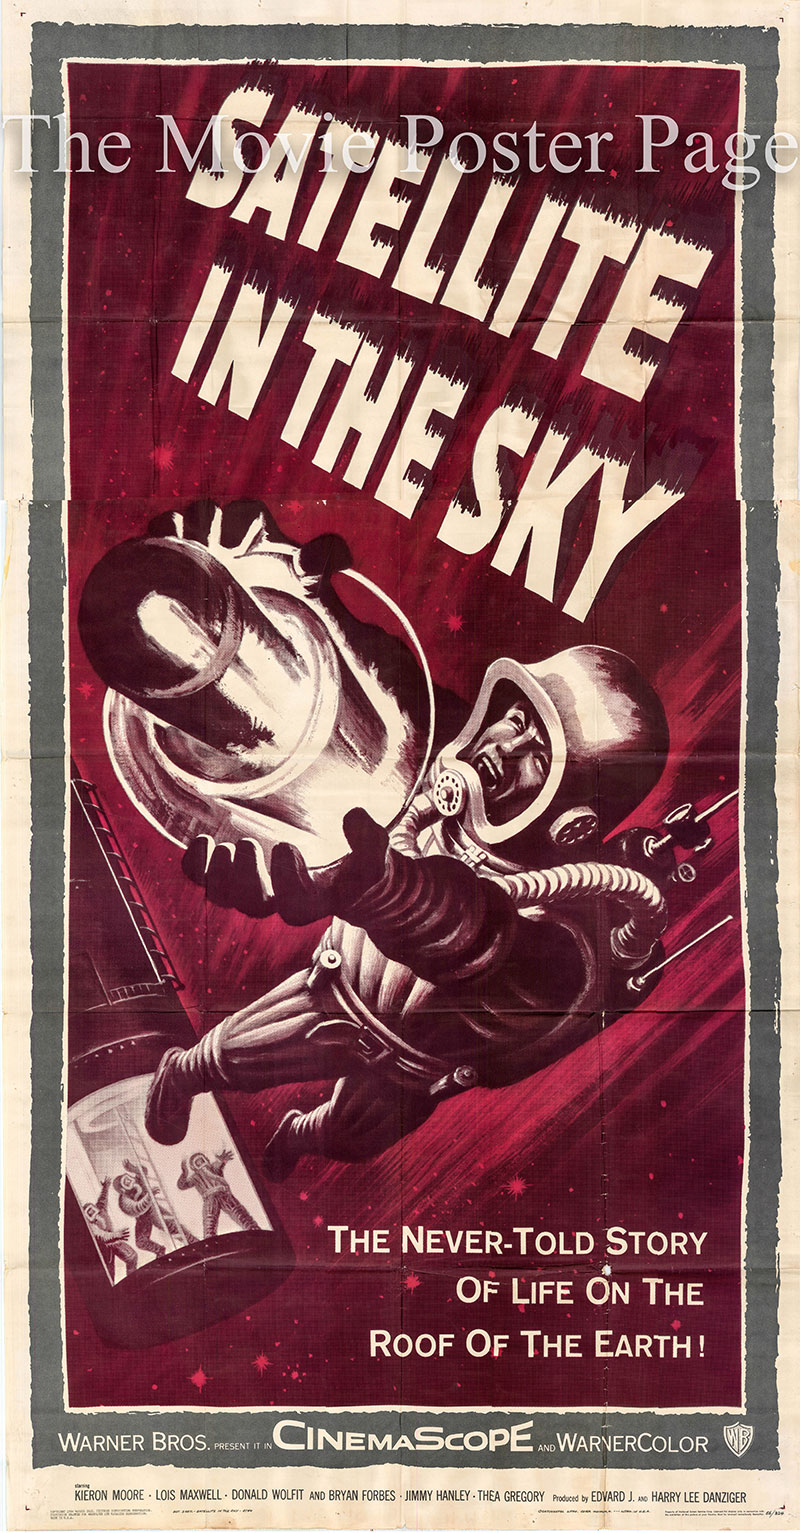 Pictured is a US three-sheet poster for the 1956 Paul Dickson film Satellite in the Sky starring Kieron Moore as Michael.